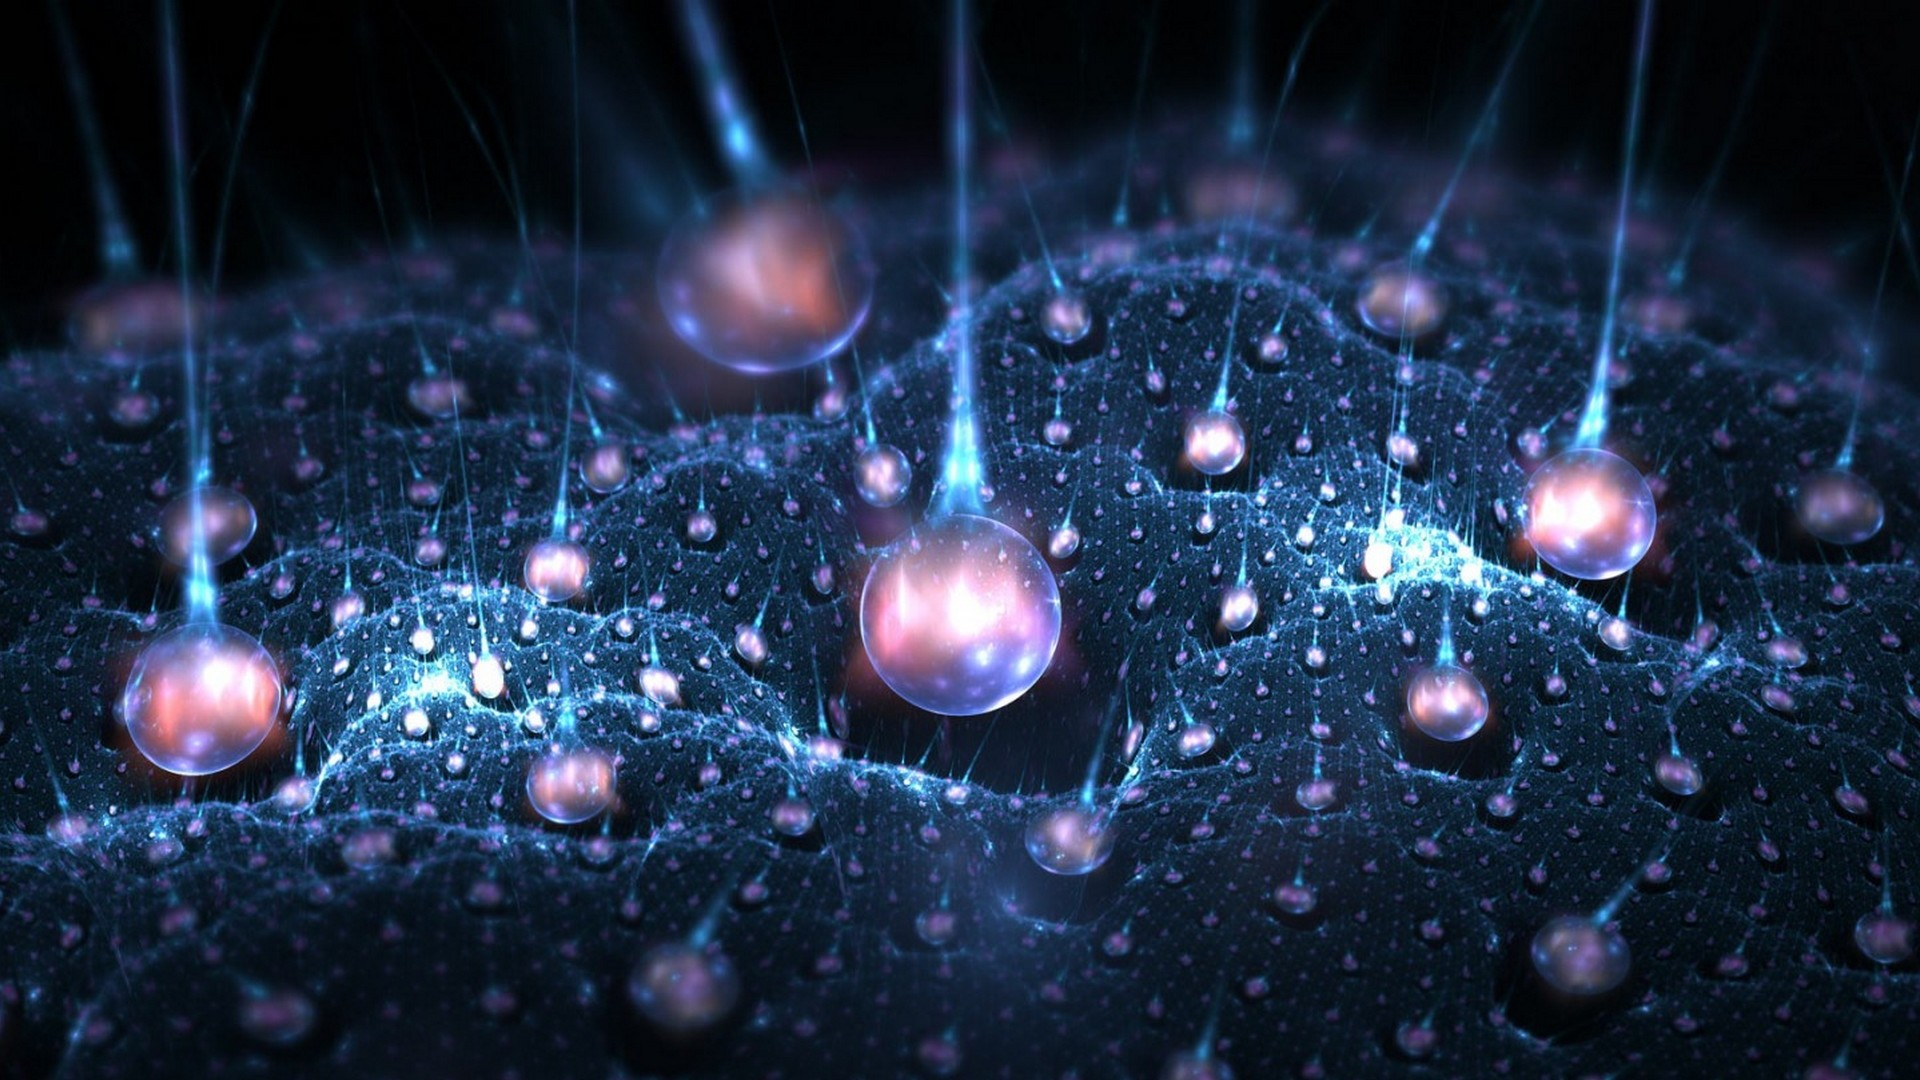 abstract 1080p 3d images hd desktop wallpapers amazing hd download 1920x1080